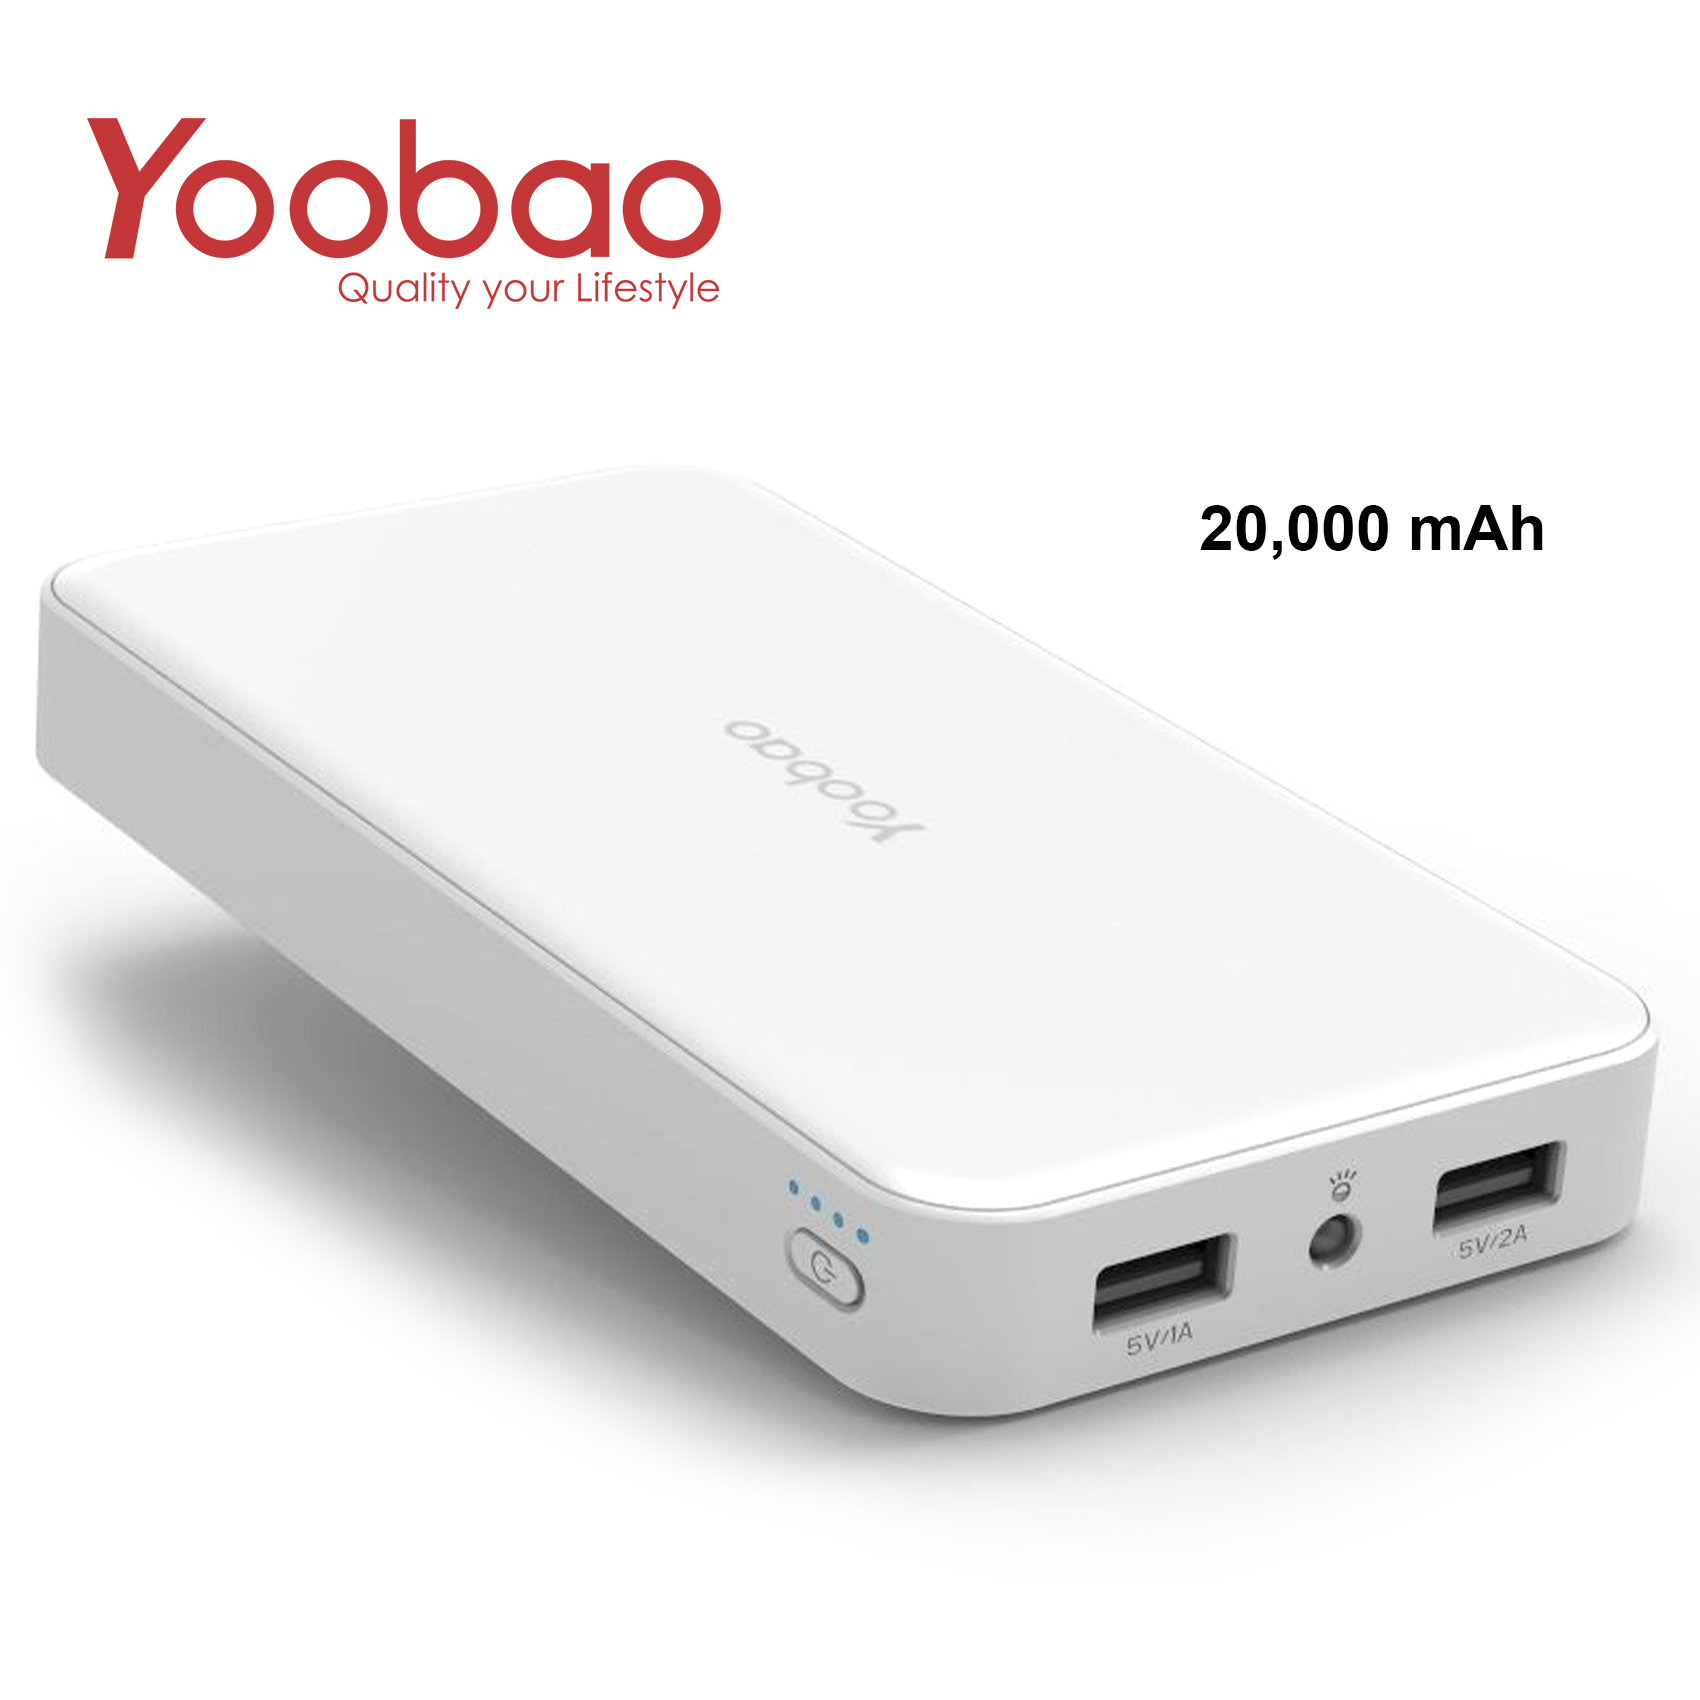 Yoobao Dual USB Port Powerbank 20000mAh - White